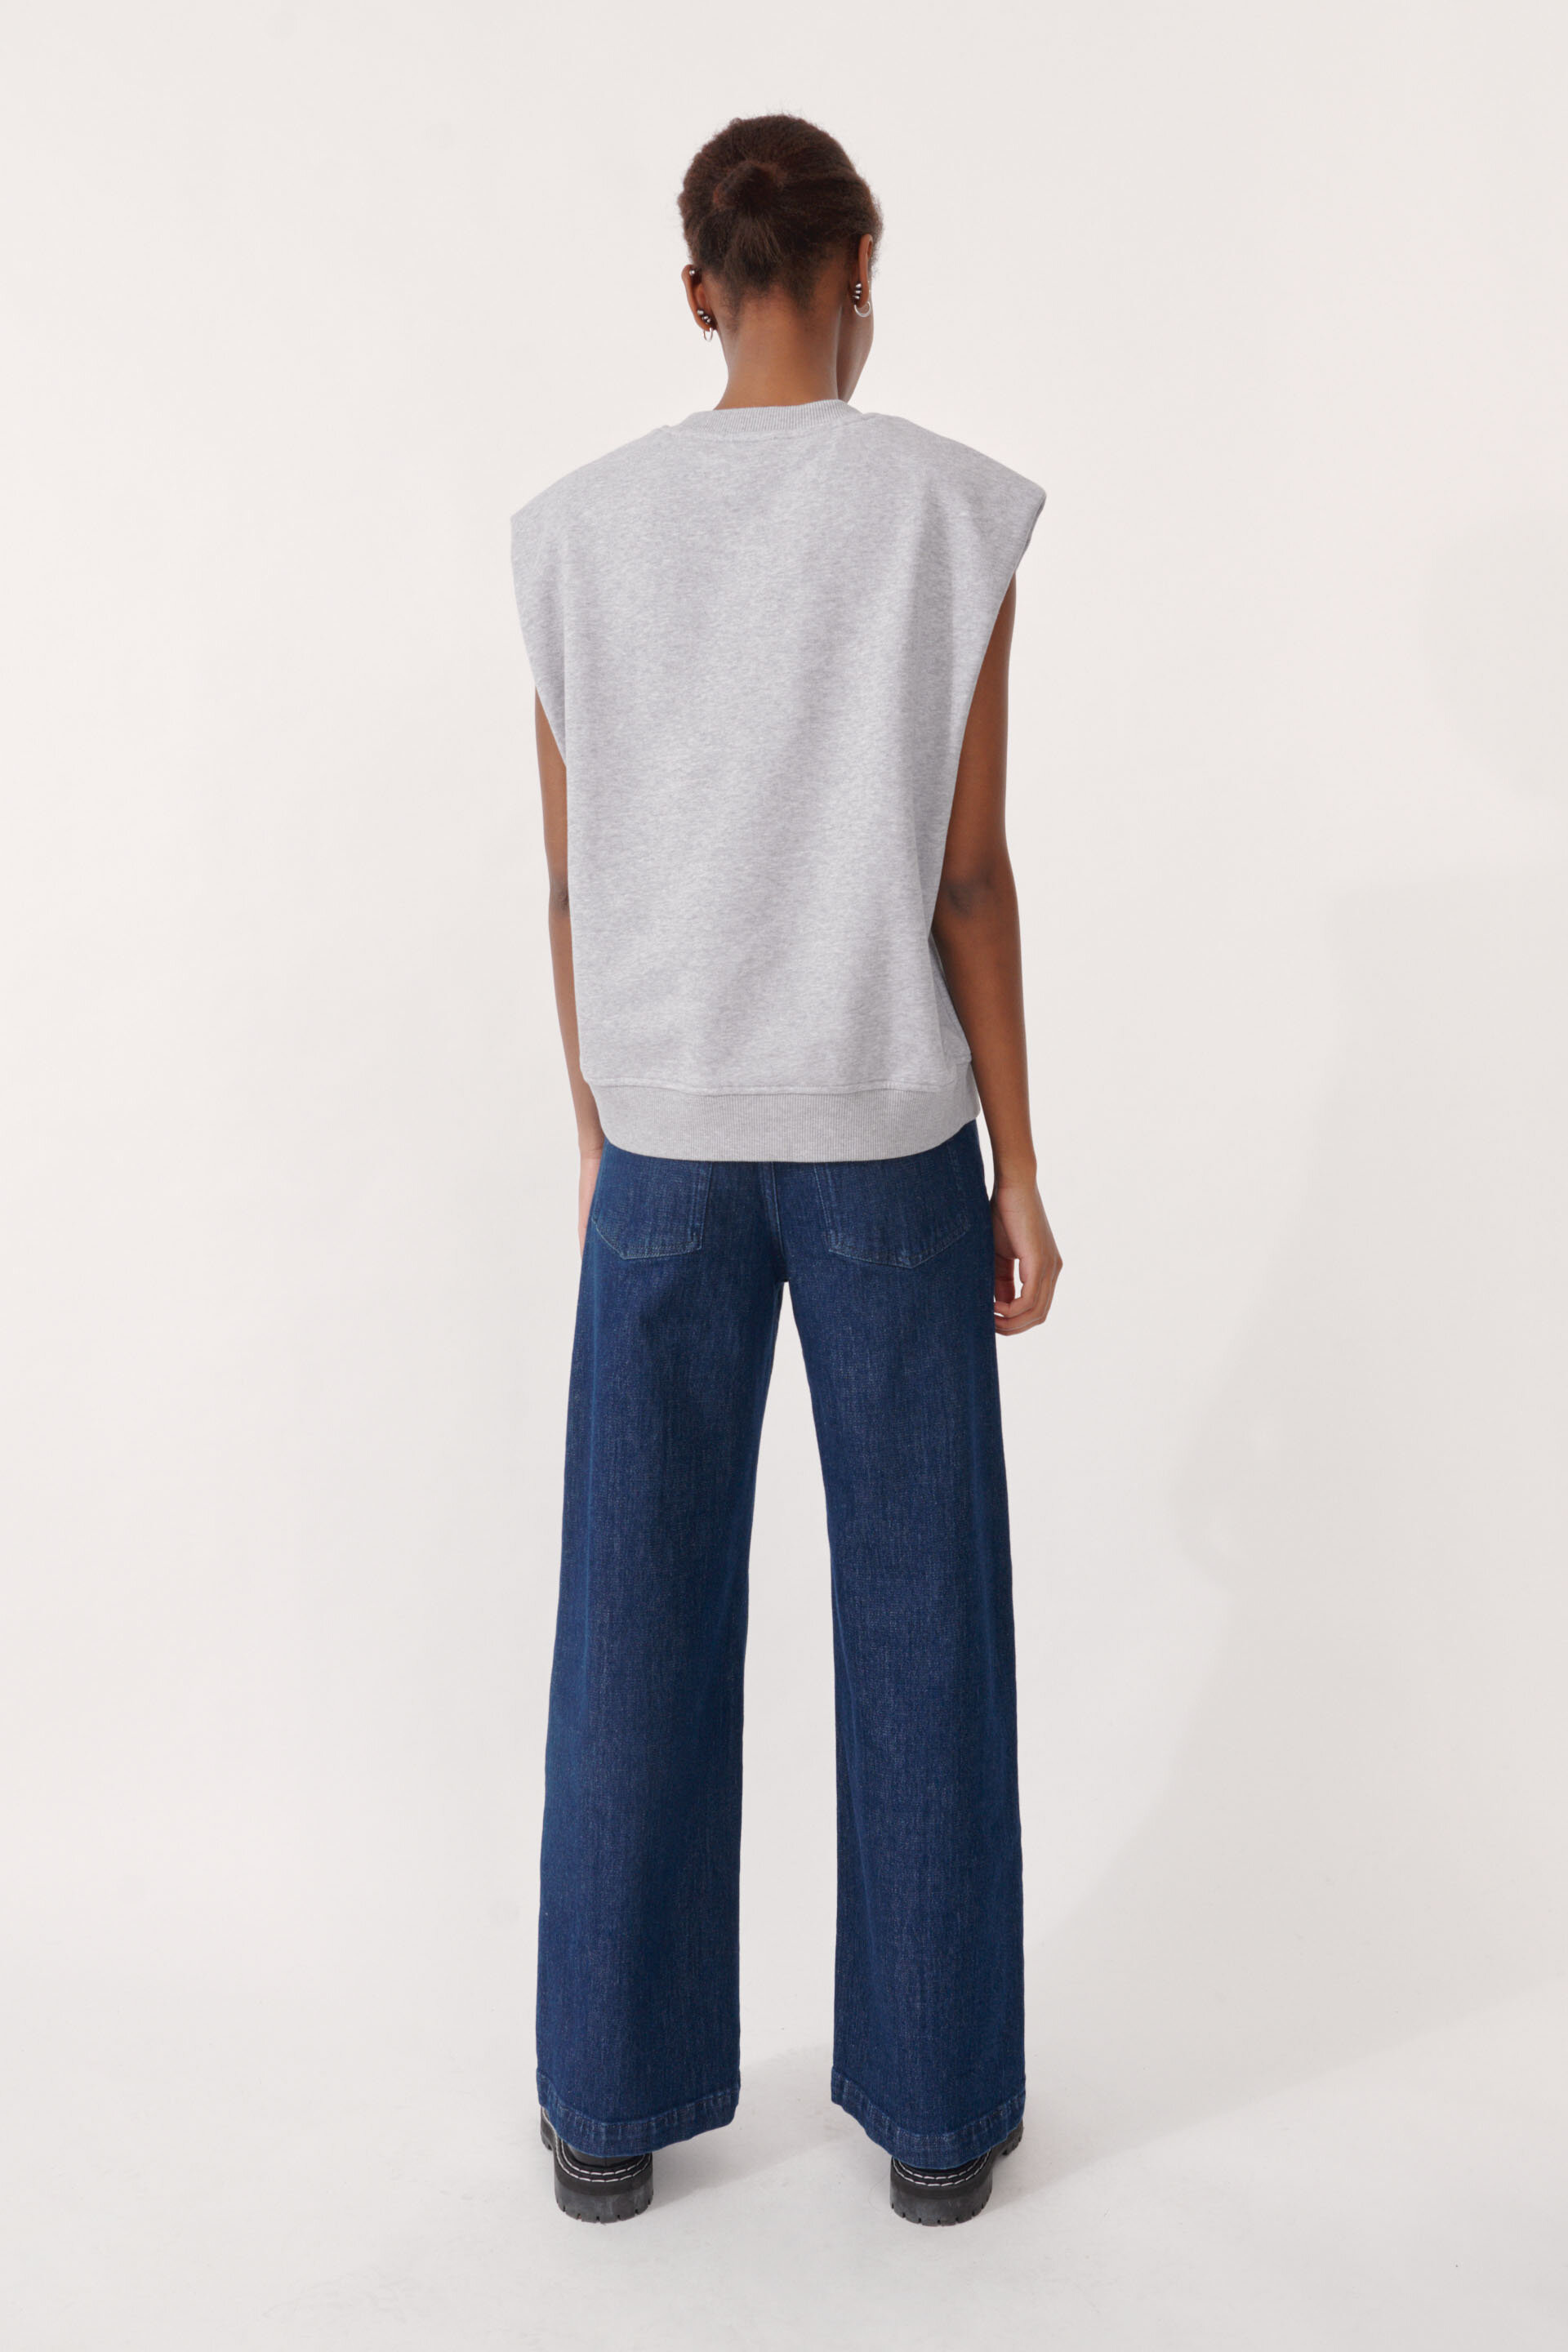 Julio Sweater Grey Melange An oversized sleeveless top with cut-off style sleeves - detail image